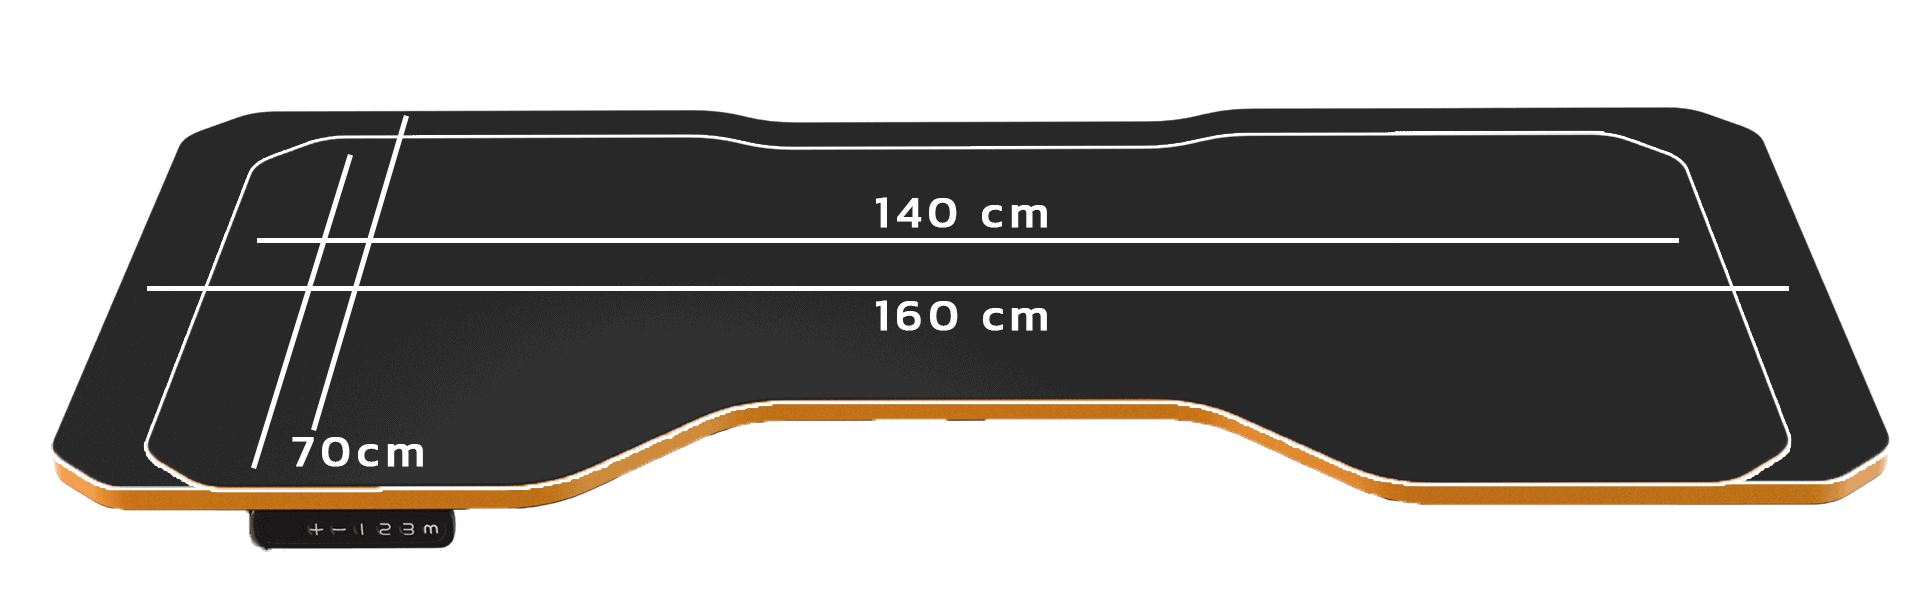 LeetDesk Gaming Table sizes compared